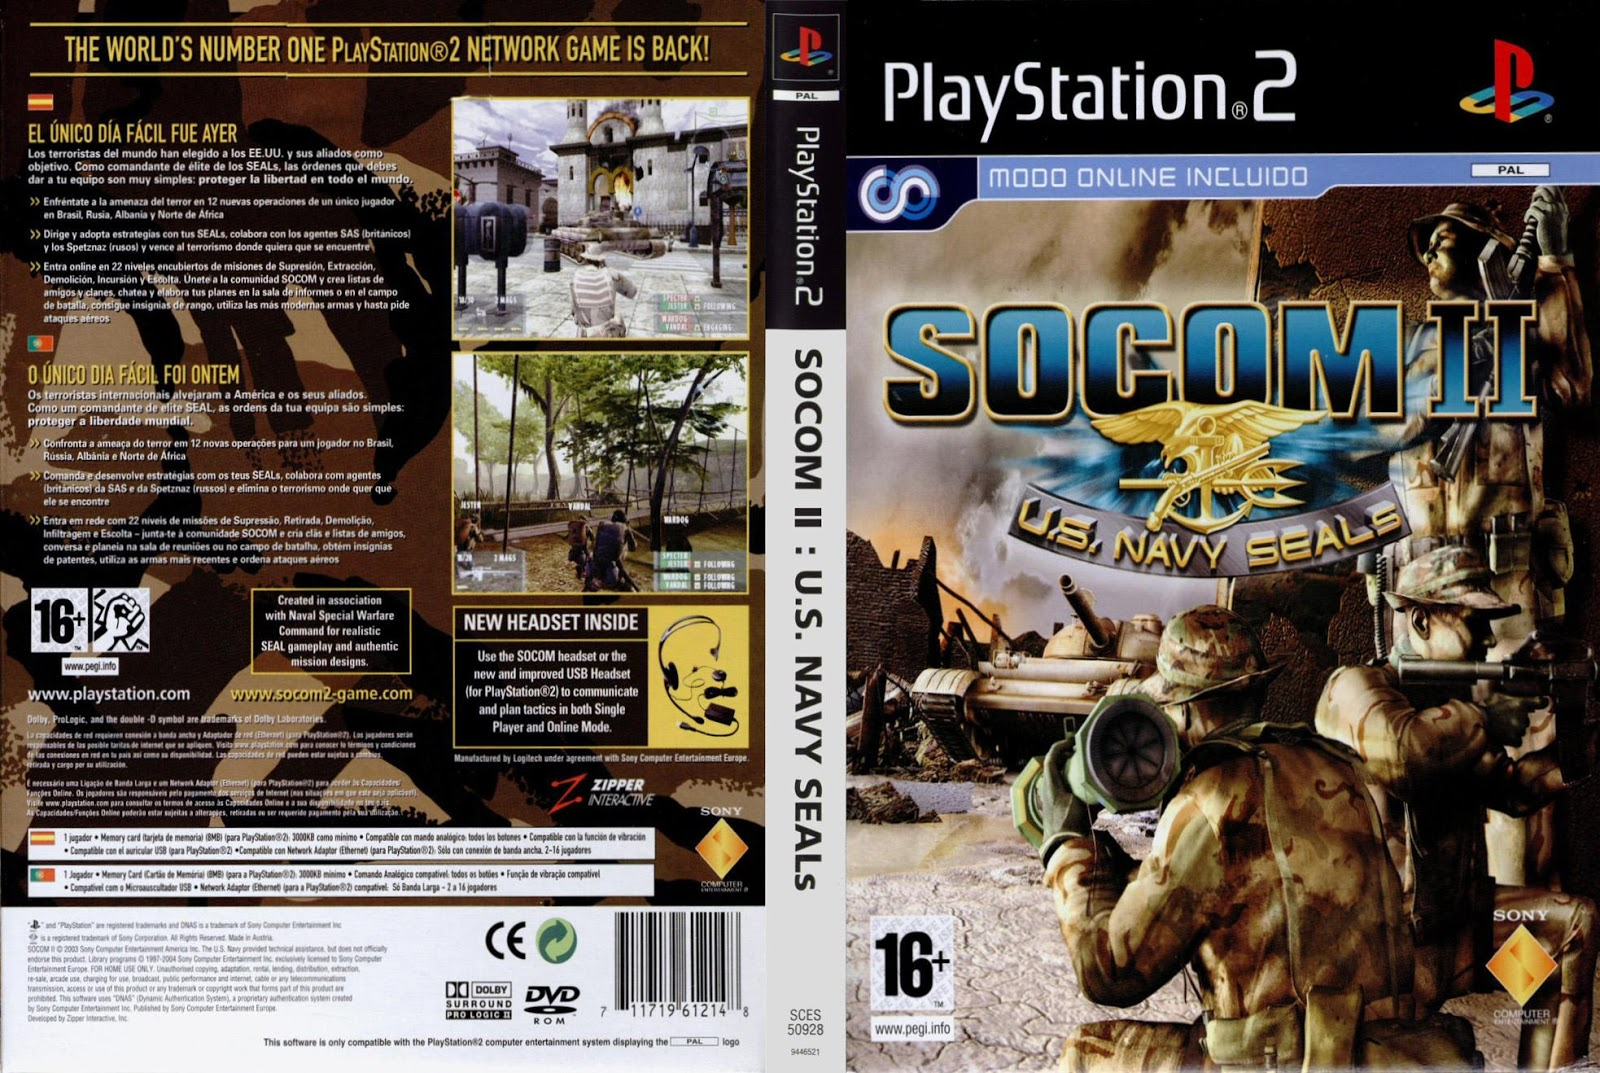 SOCOM II: U S  Navy SEALS wallpapers, Video Game, HQ SOCOM